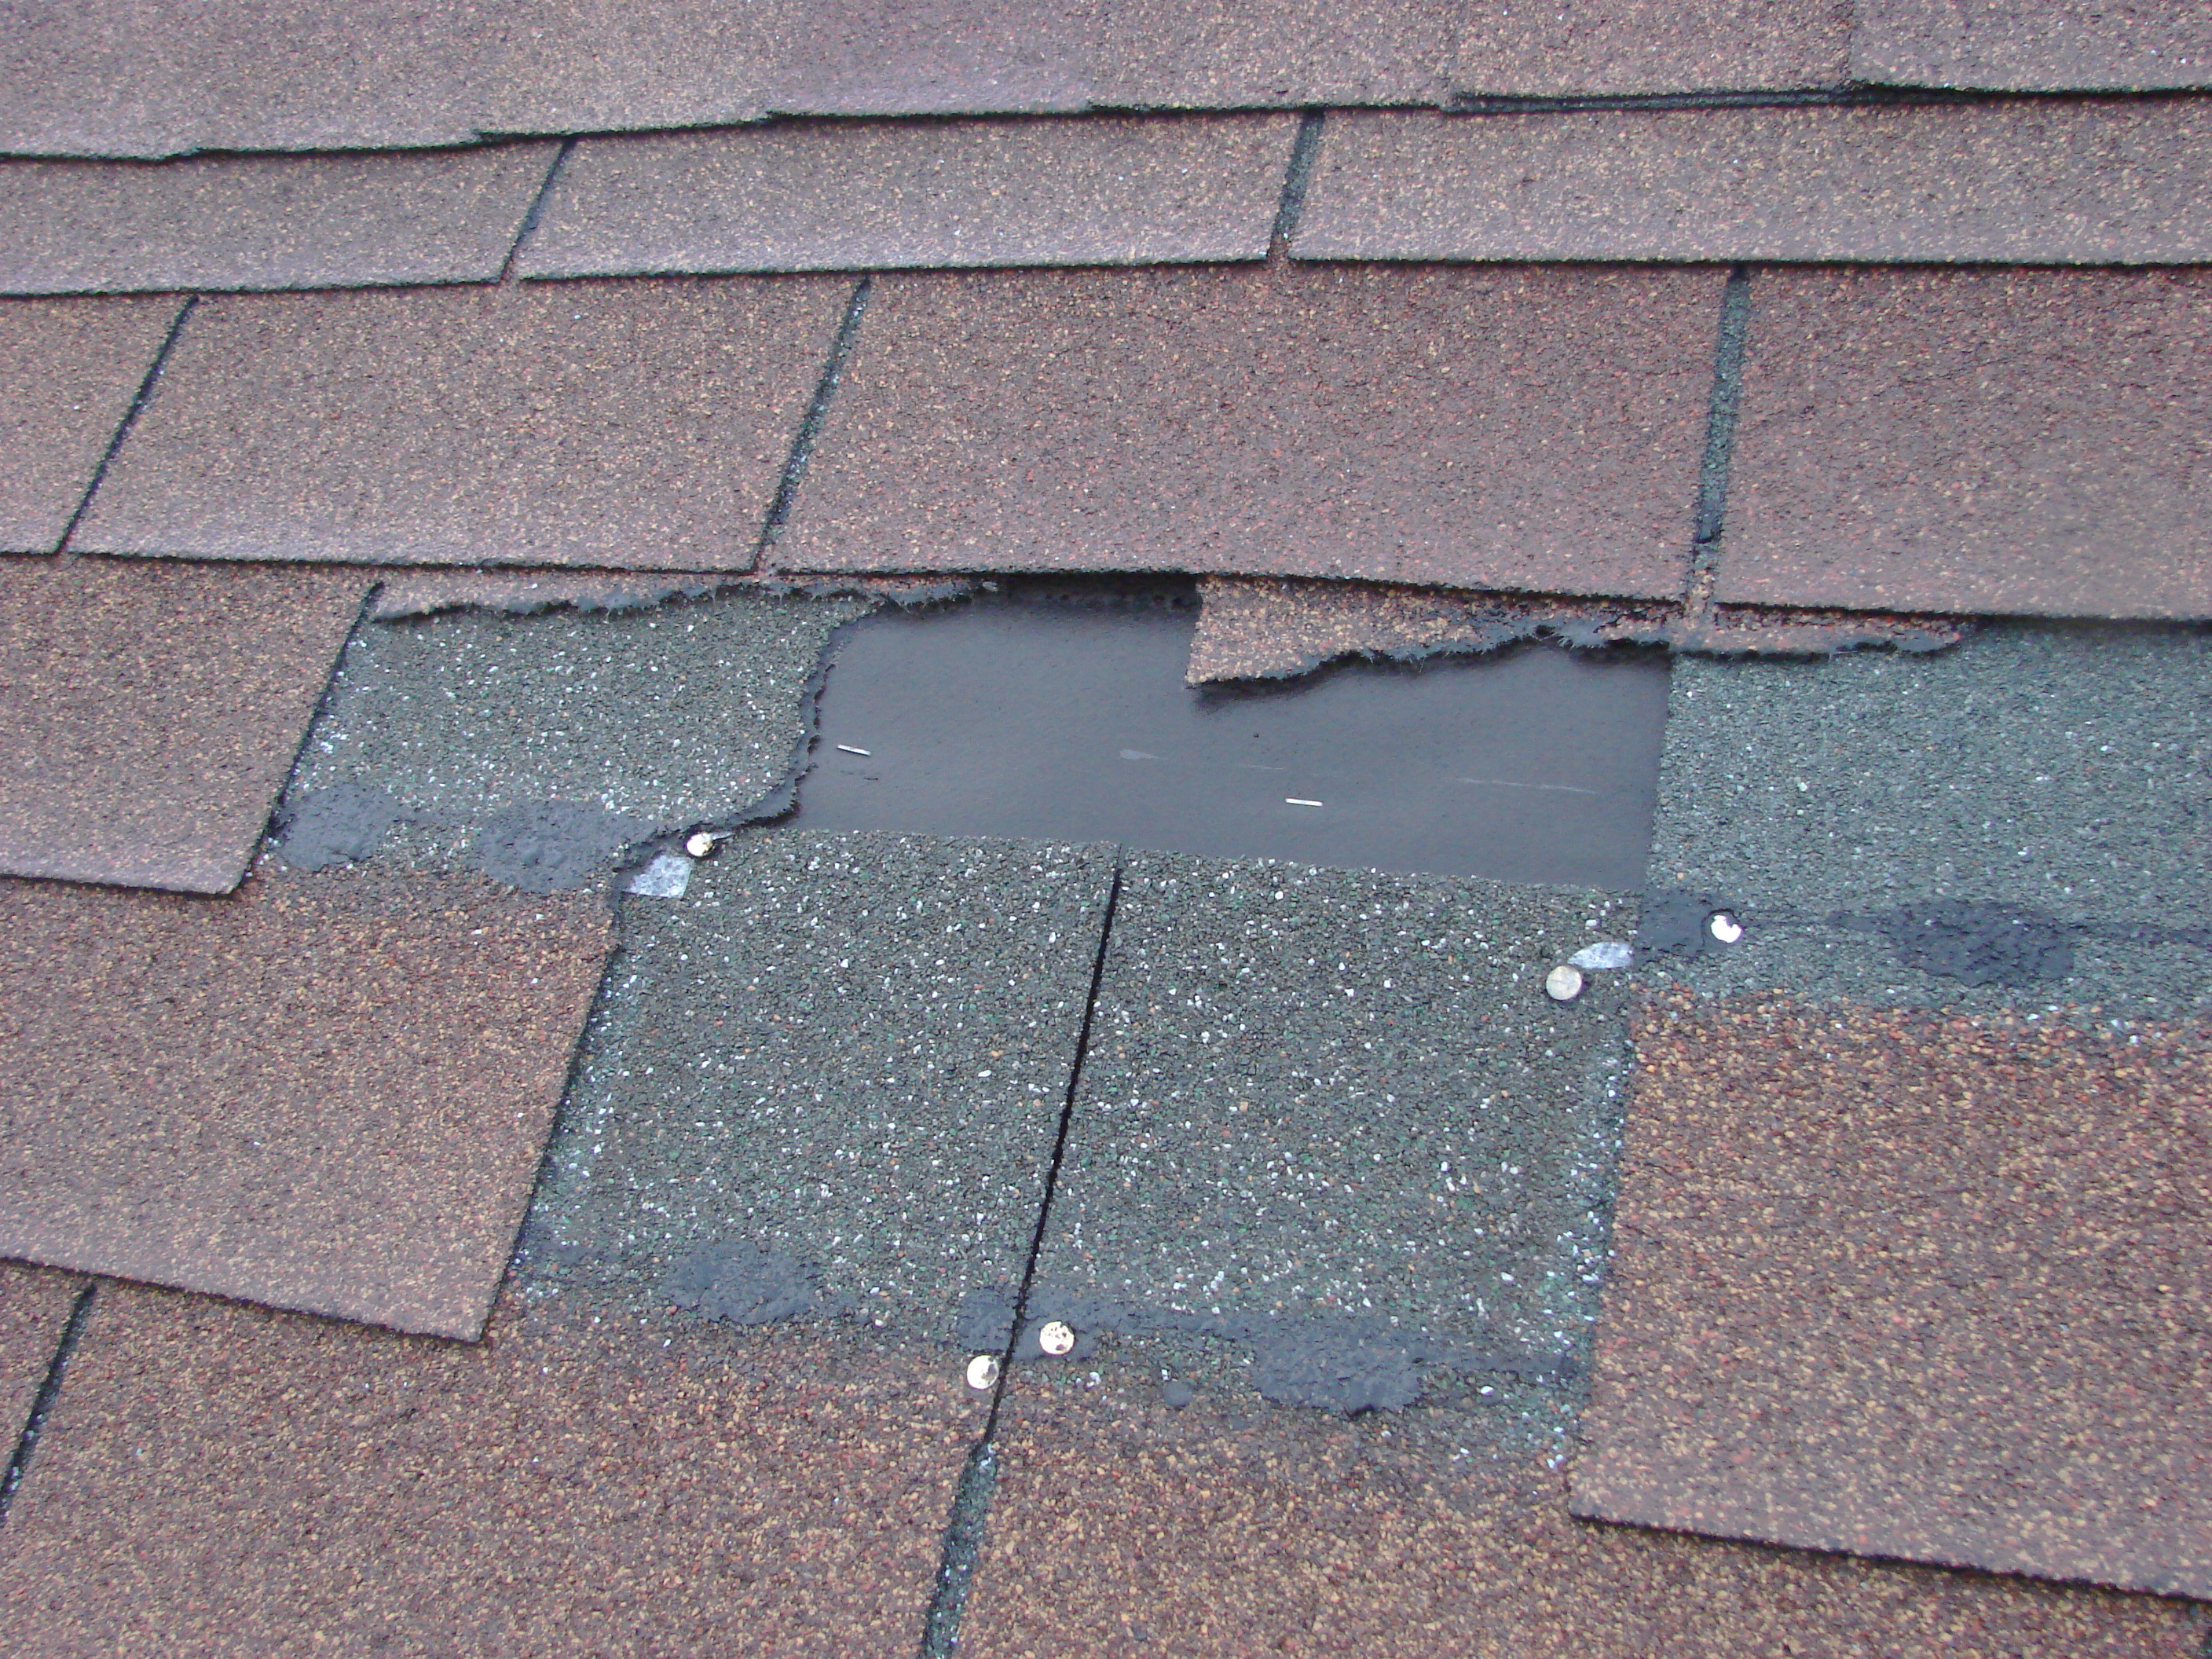 Strong Winds Can Damage Your Roof